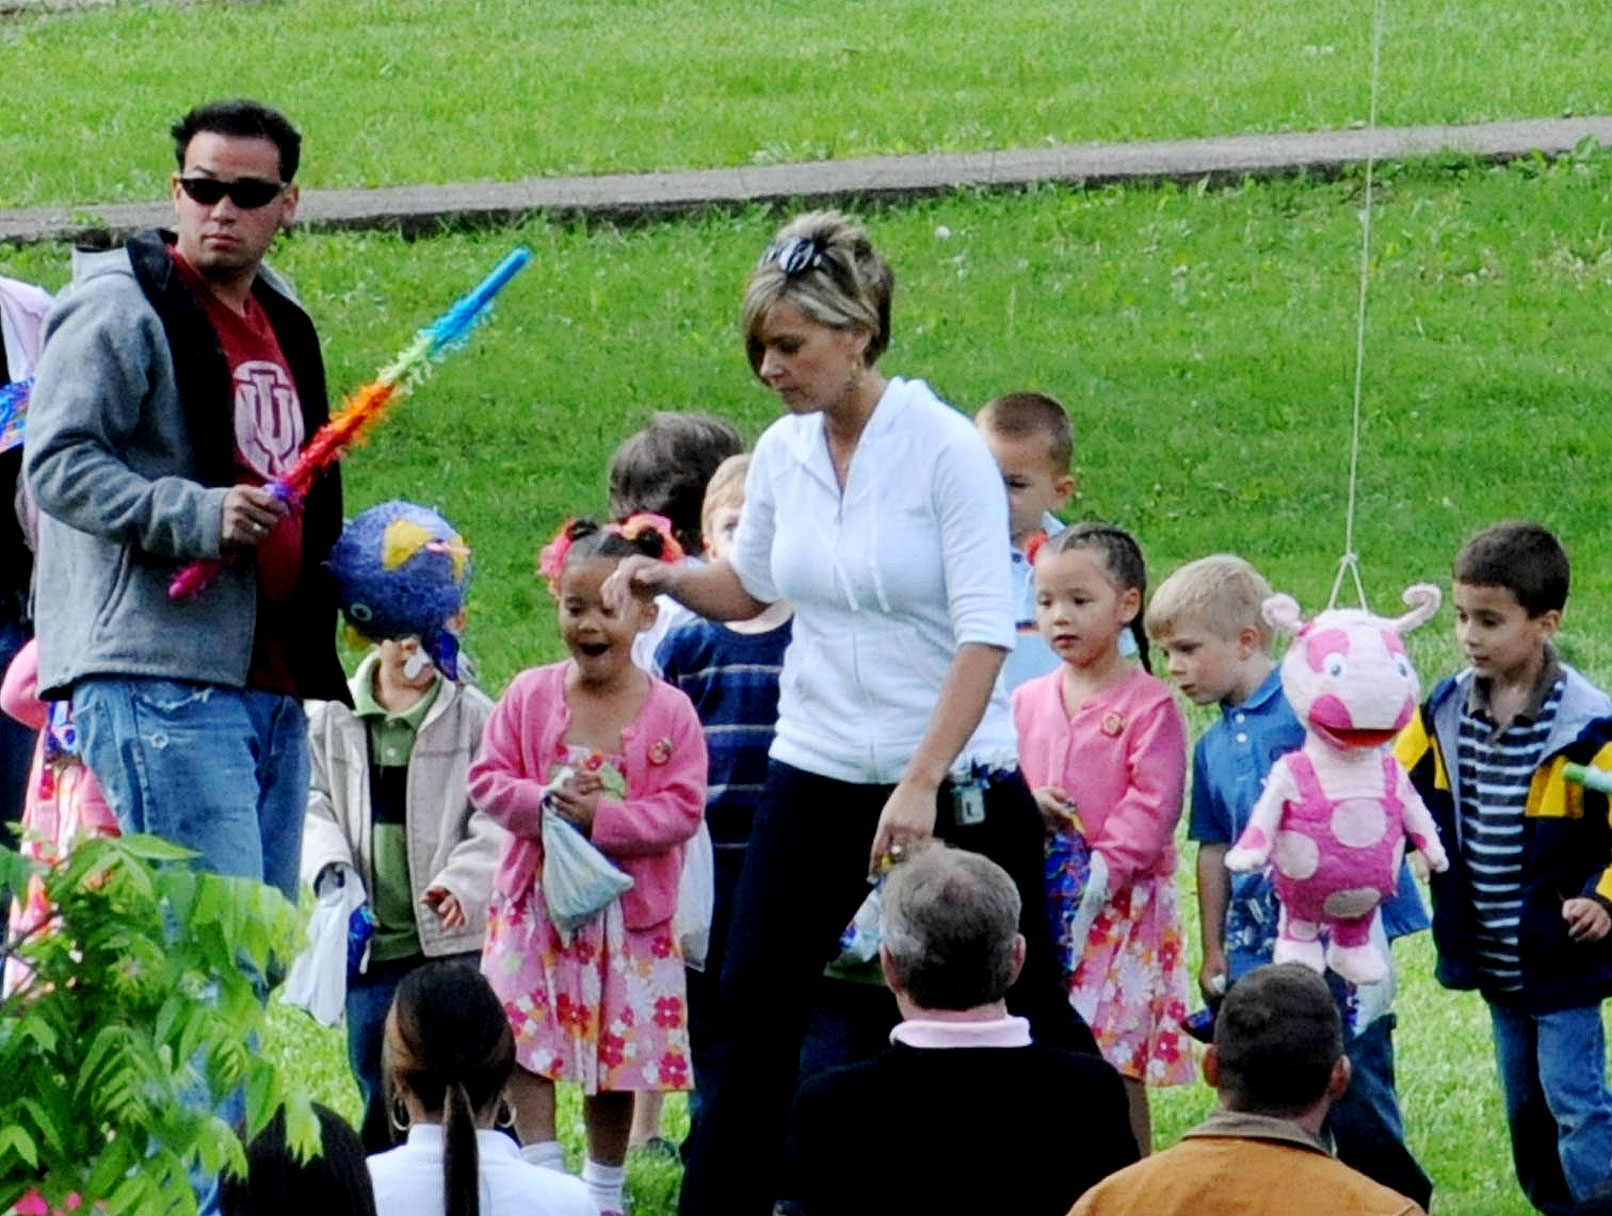 Jon and Kate Gosselin Snub Each Other at Their Kids' Birthday Party